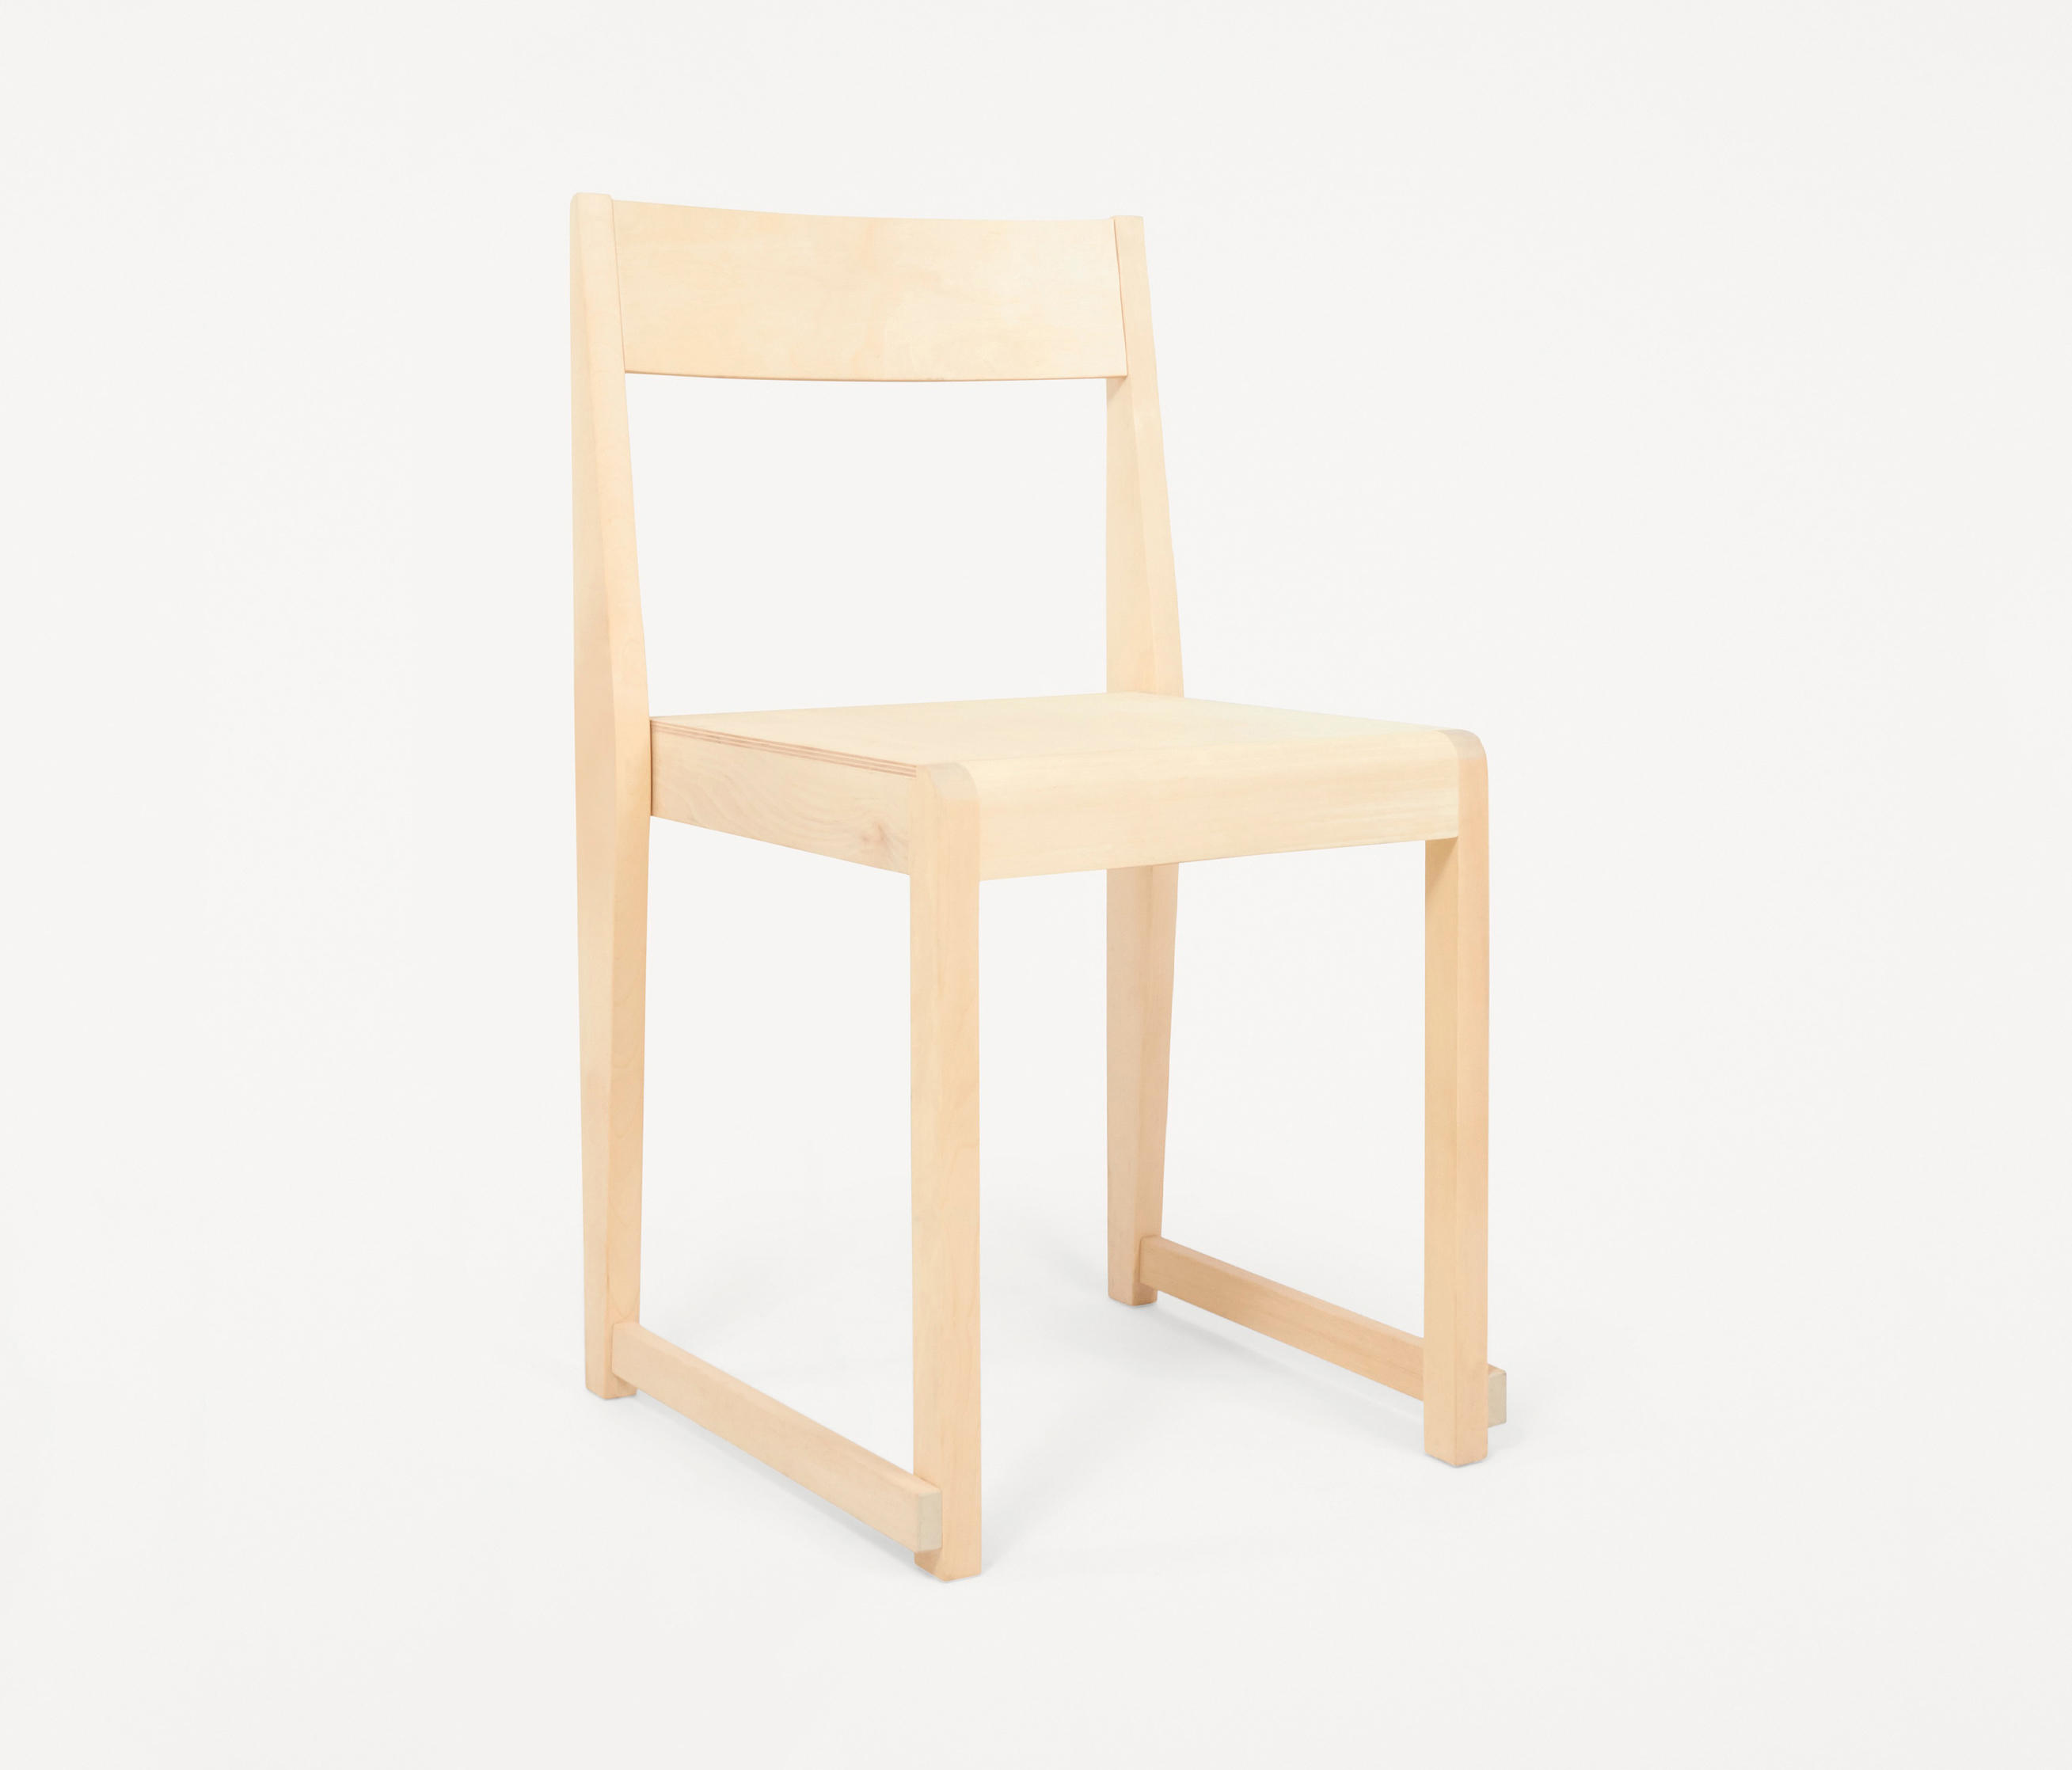 Frama Chair 01 Natural wood / natural wood